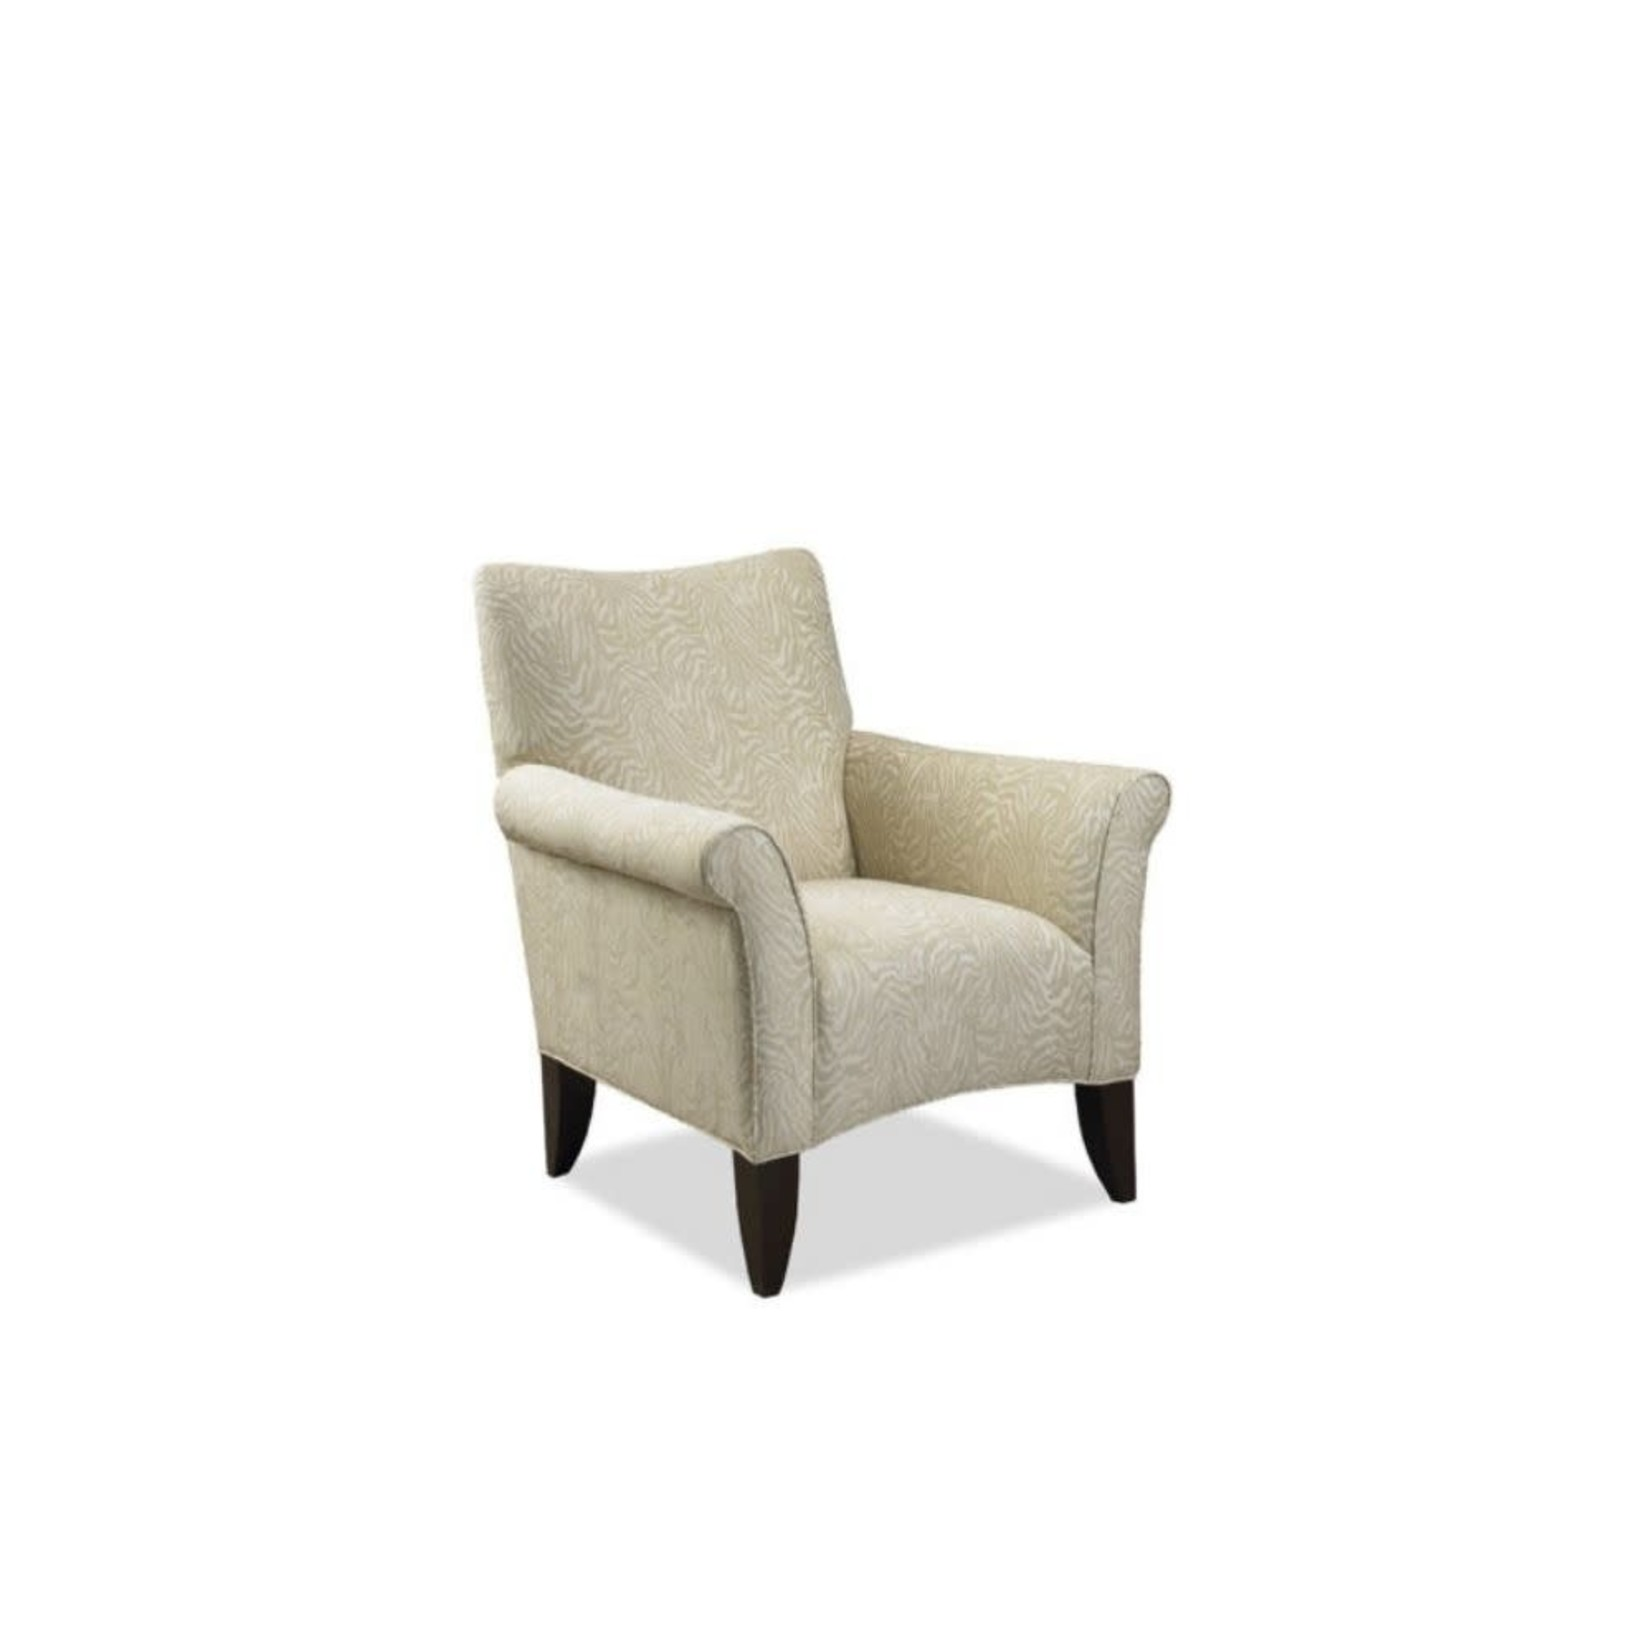 Brentwood Classics Linton Chair